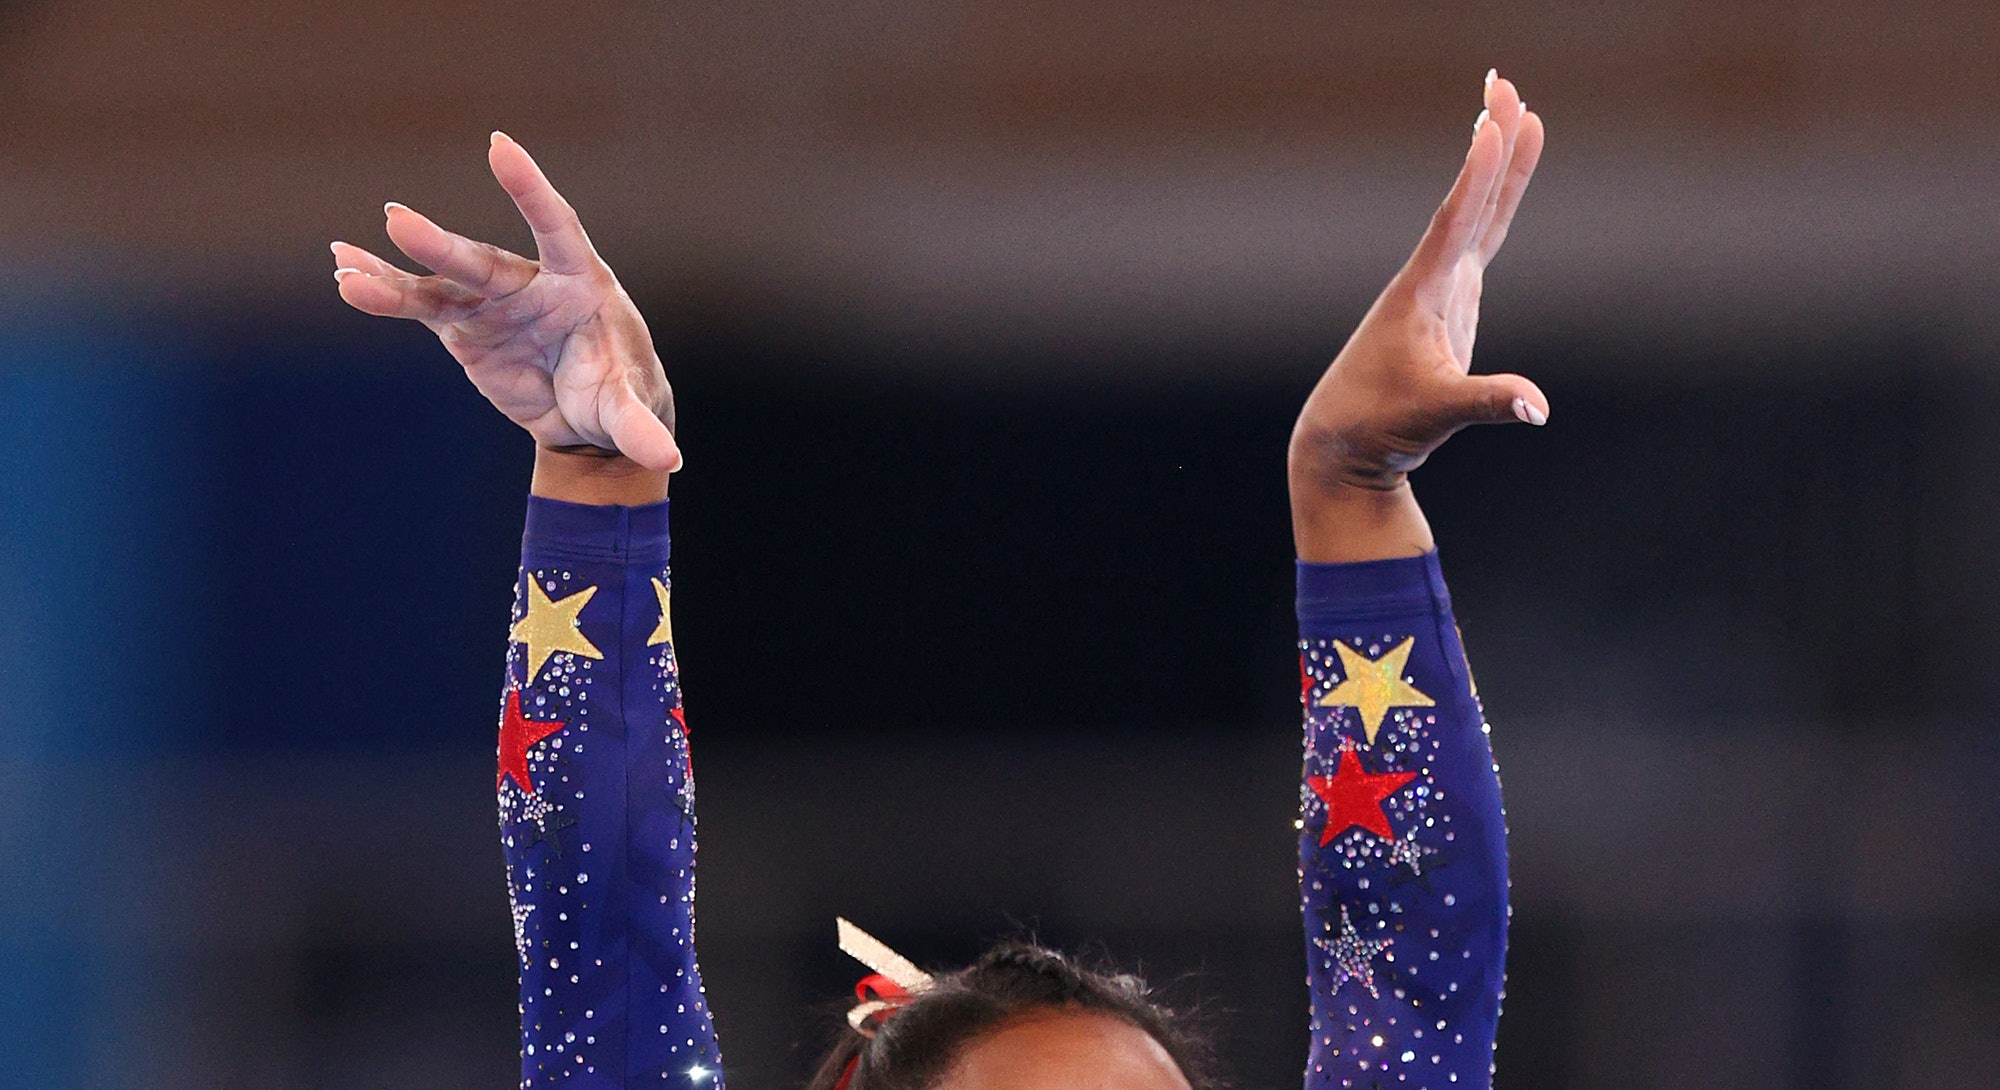 Here are the best US Olympics uniforms through the years, from skirt suits to athletic shorts and ev...